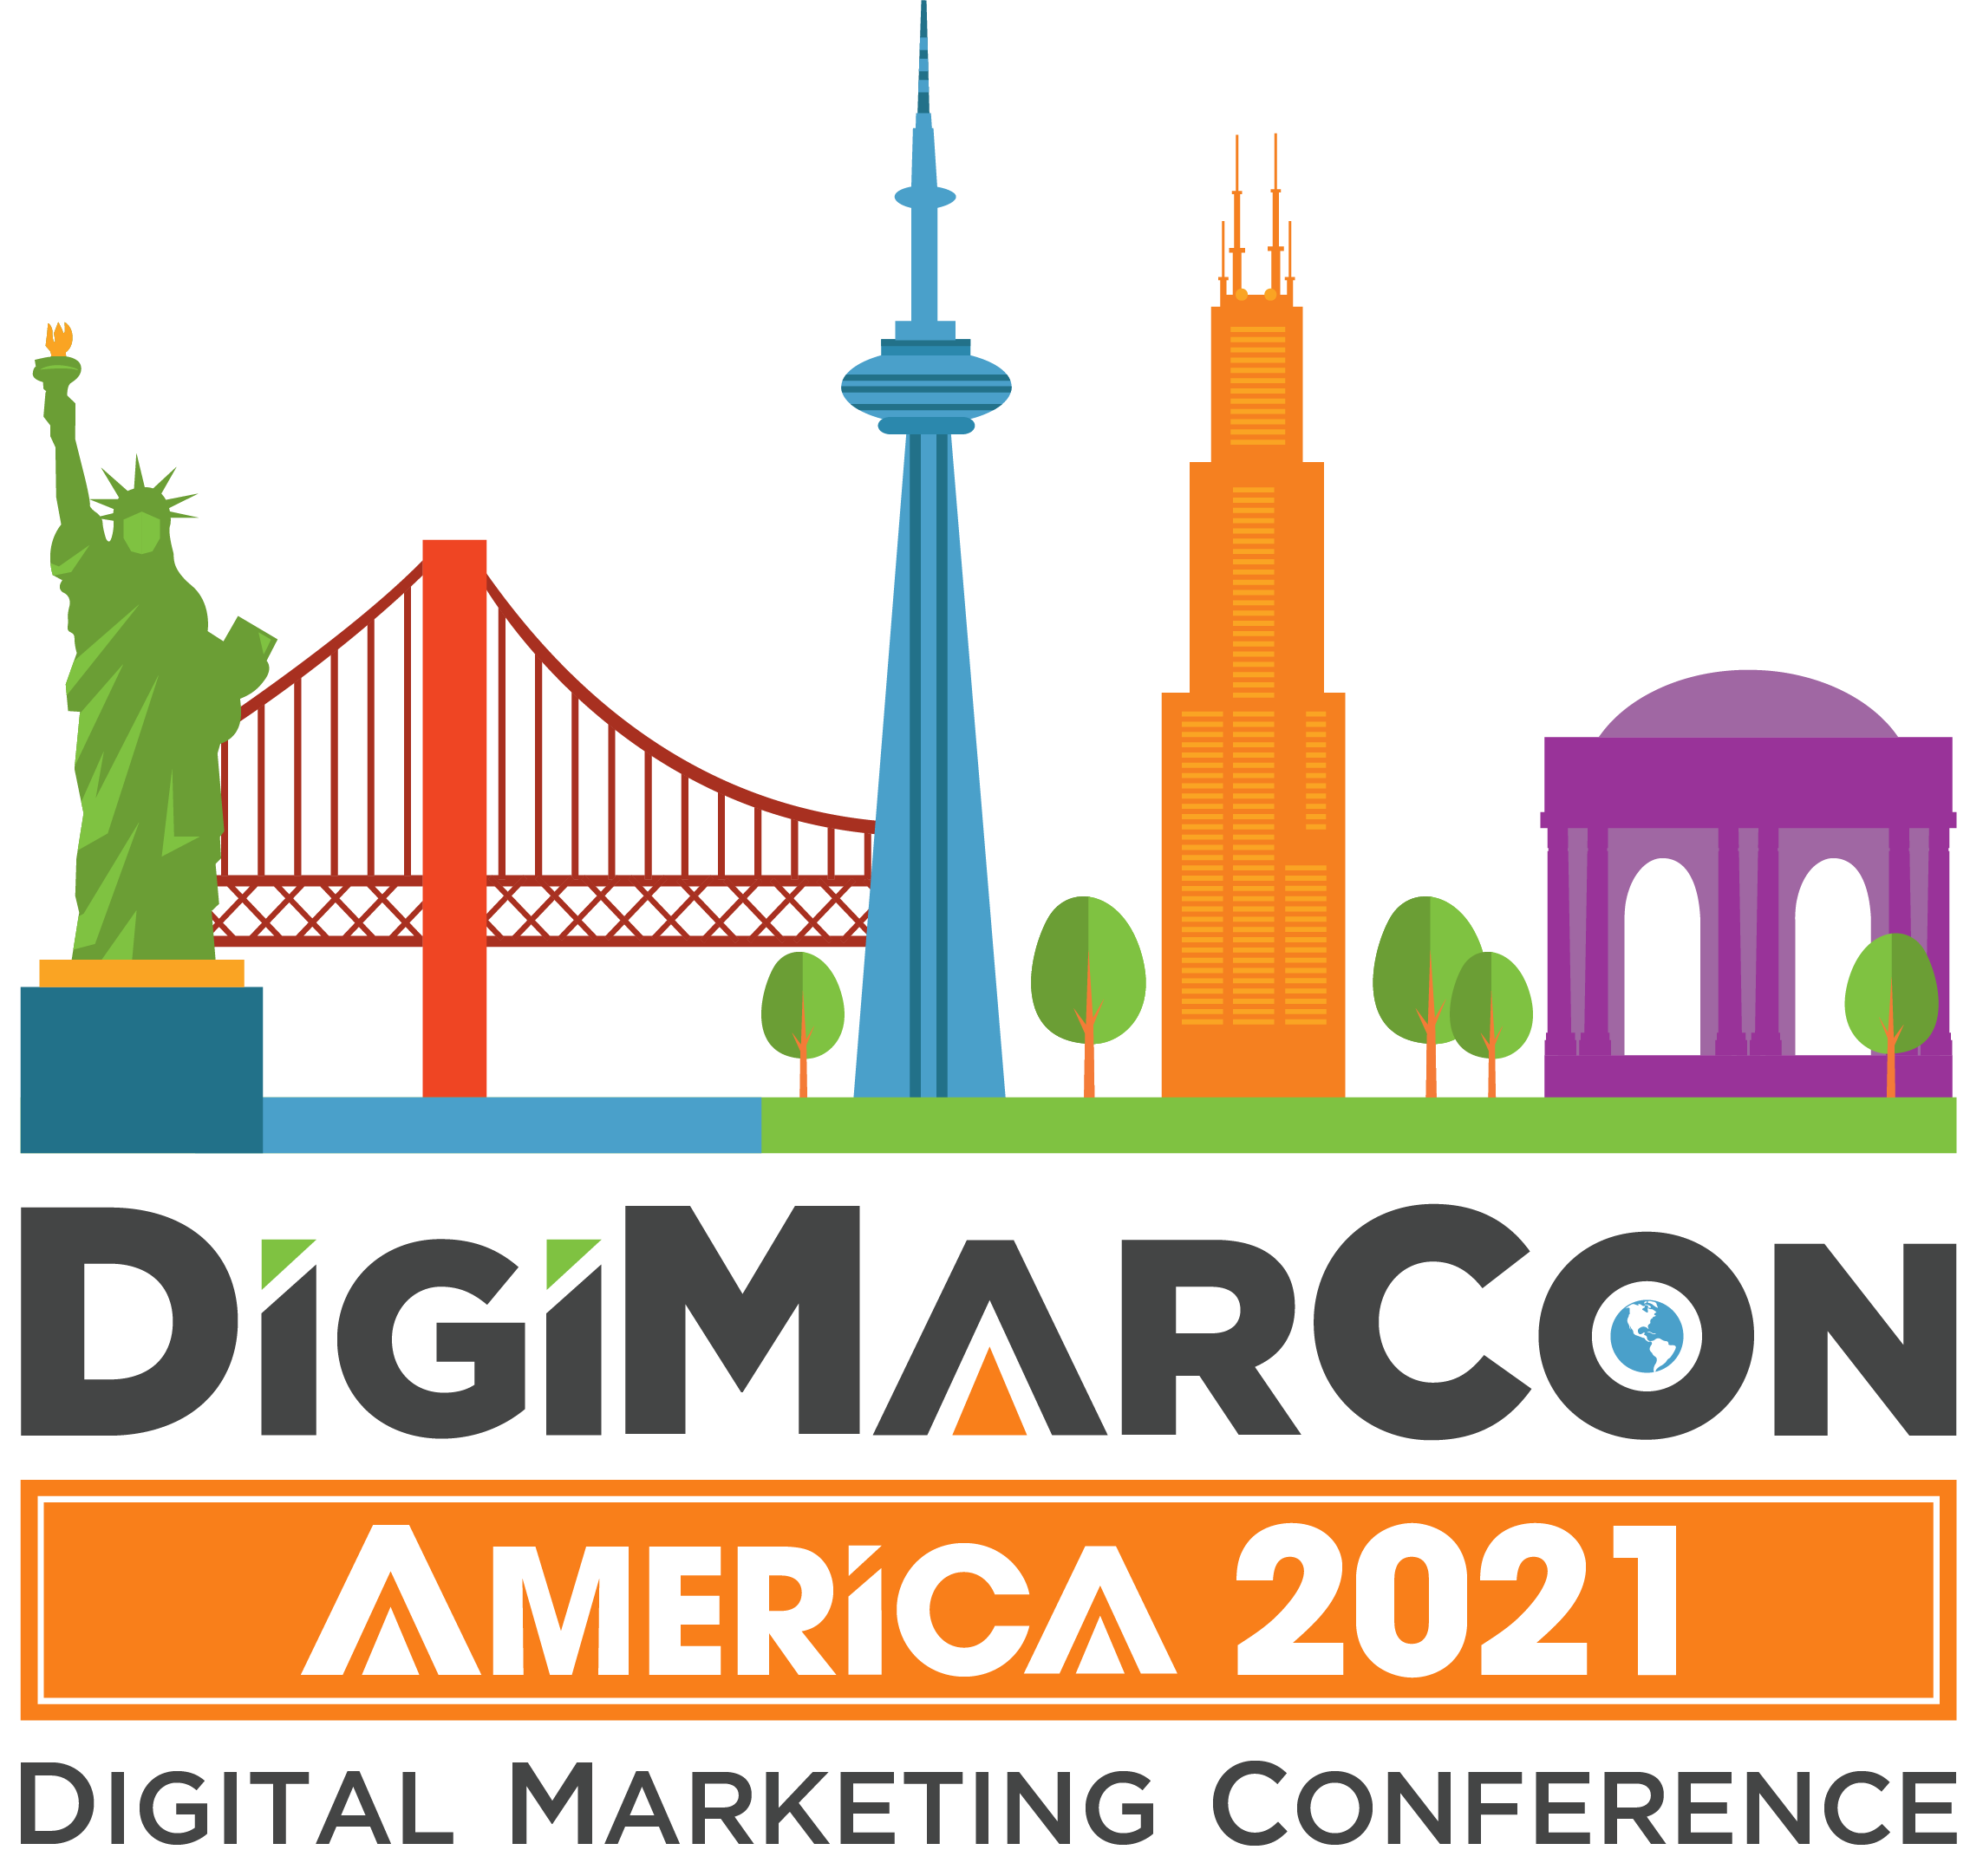 DigiMarCon America 2021 - Digital Marketing, Media and Advertising Conference